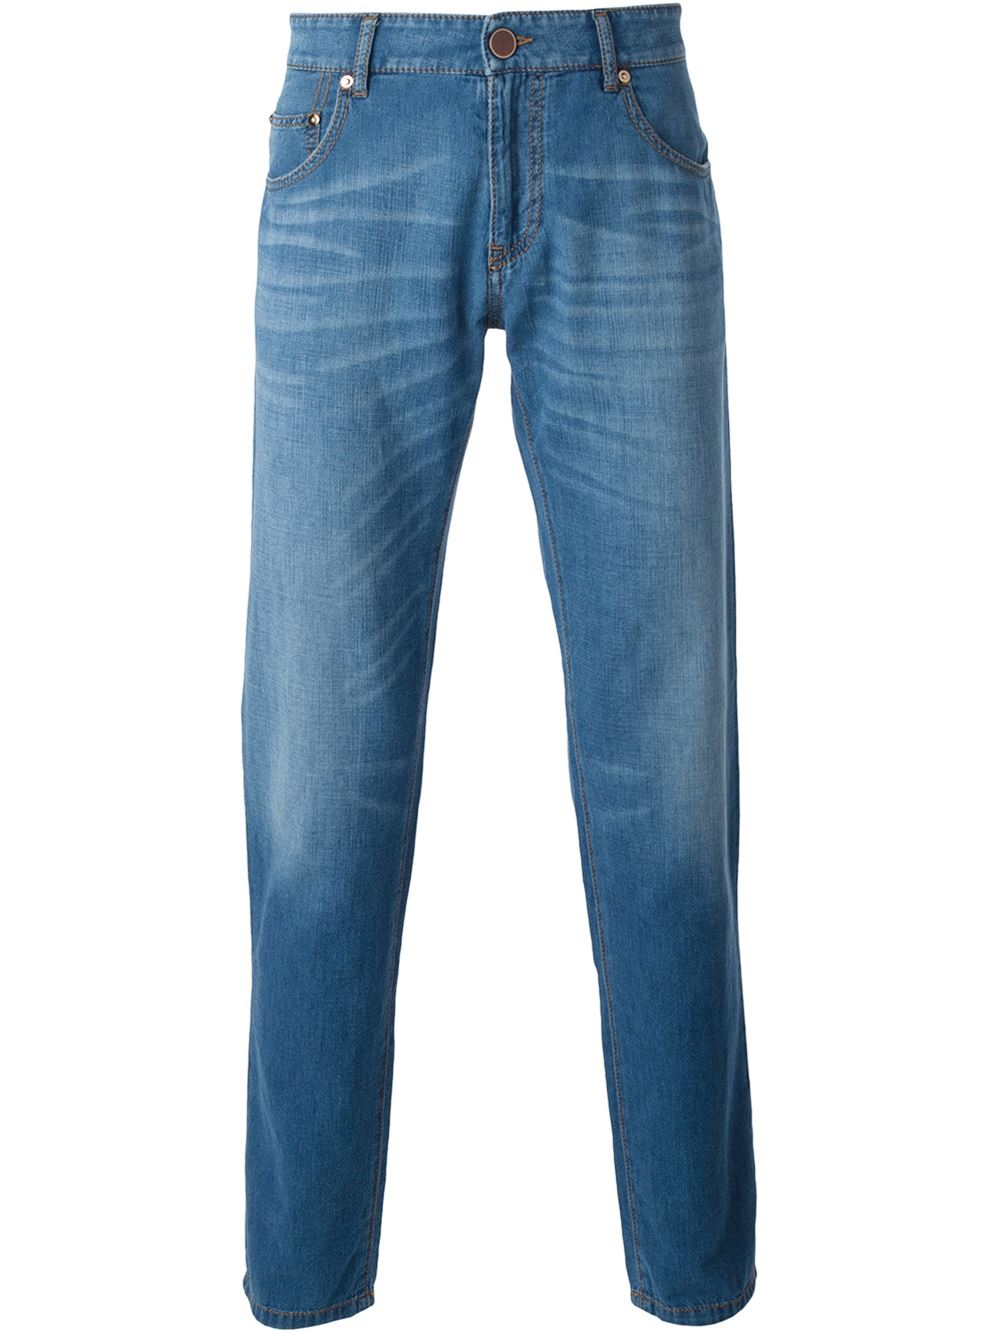 Shop Wrangler Regular fit men's jeans by style, collection, department or price and find your perfect fit.